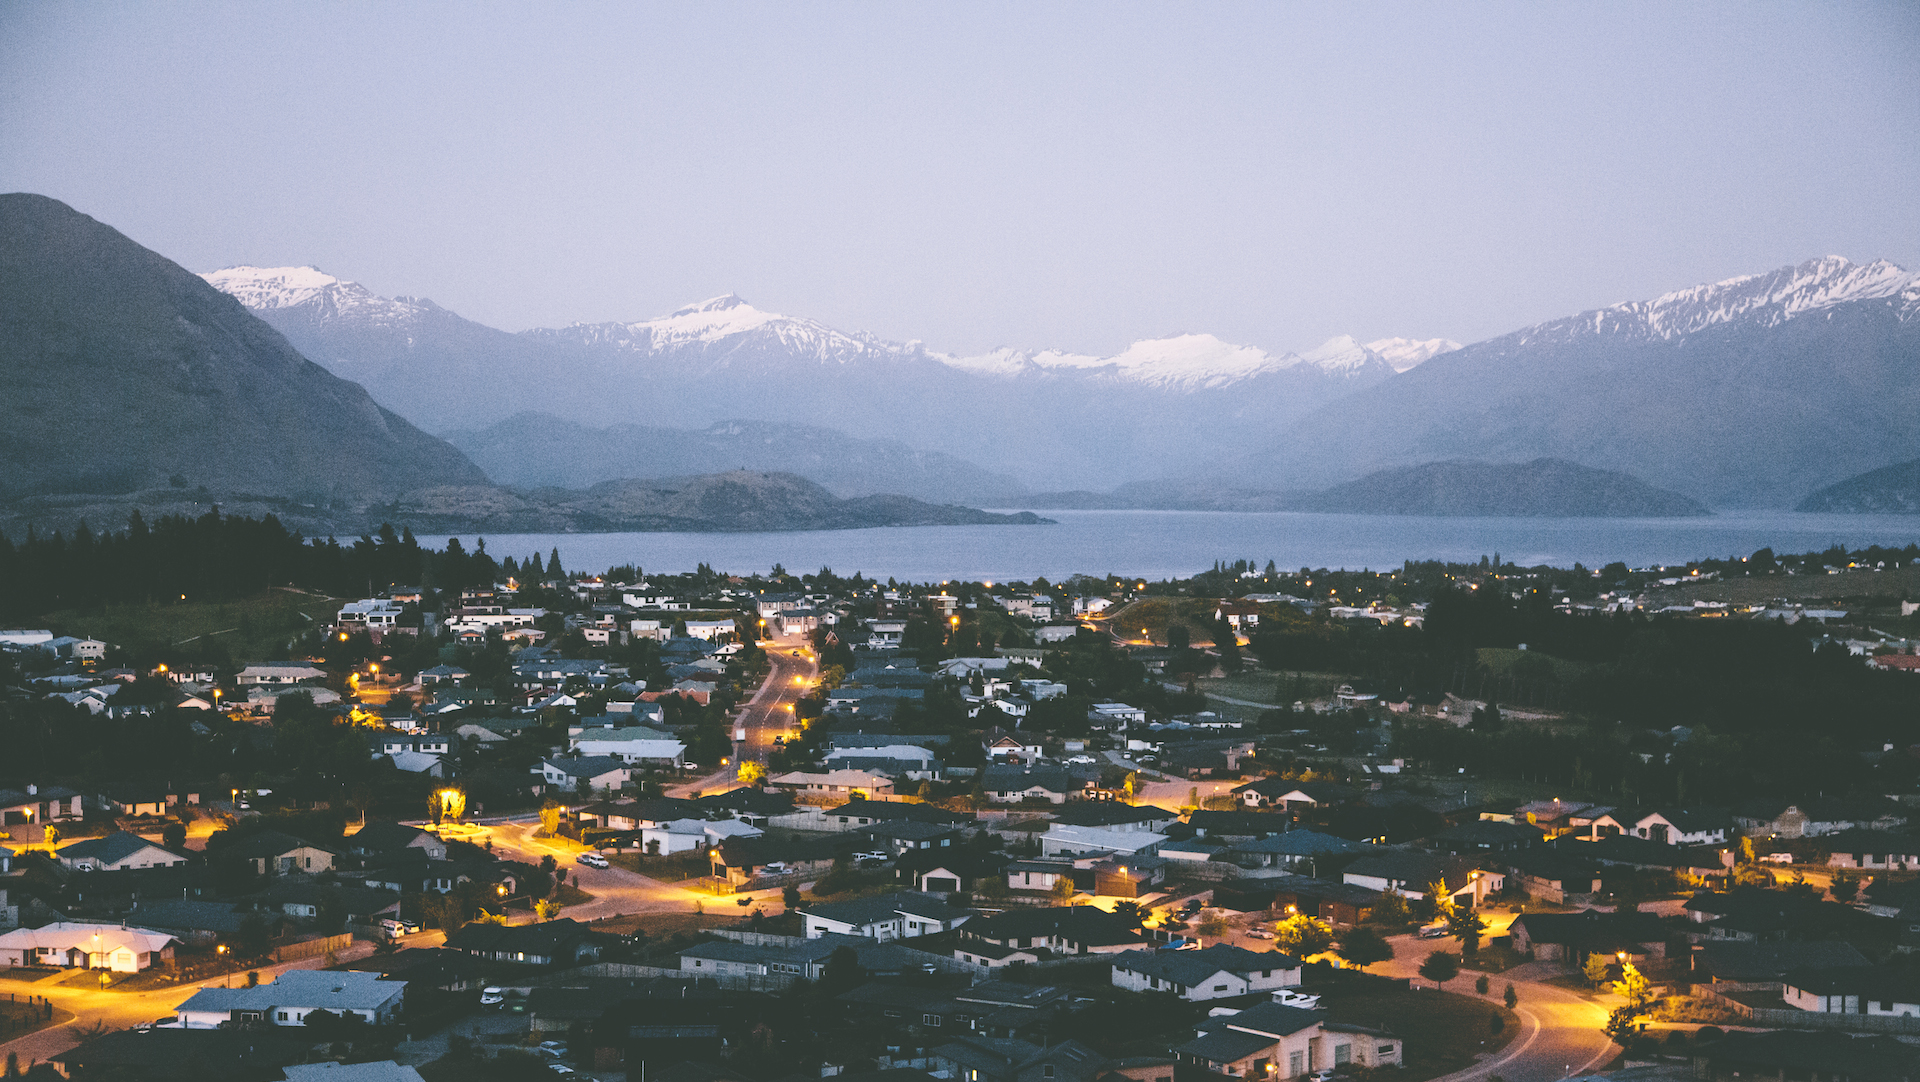 A Weekender's Guide to Wanaka